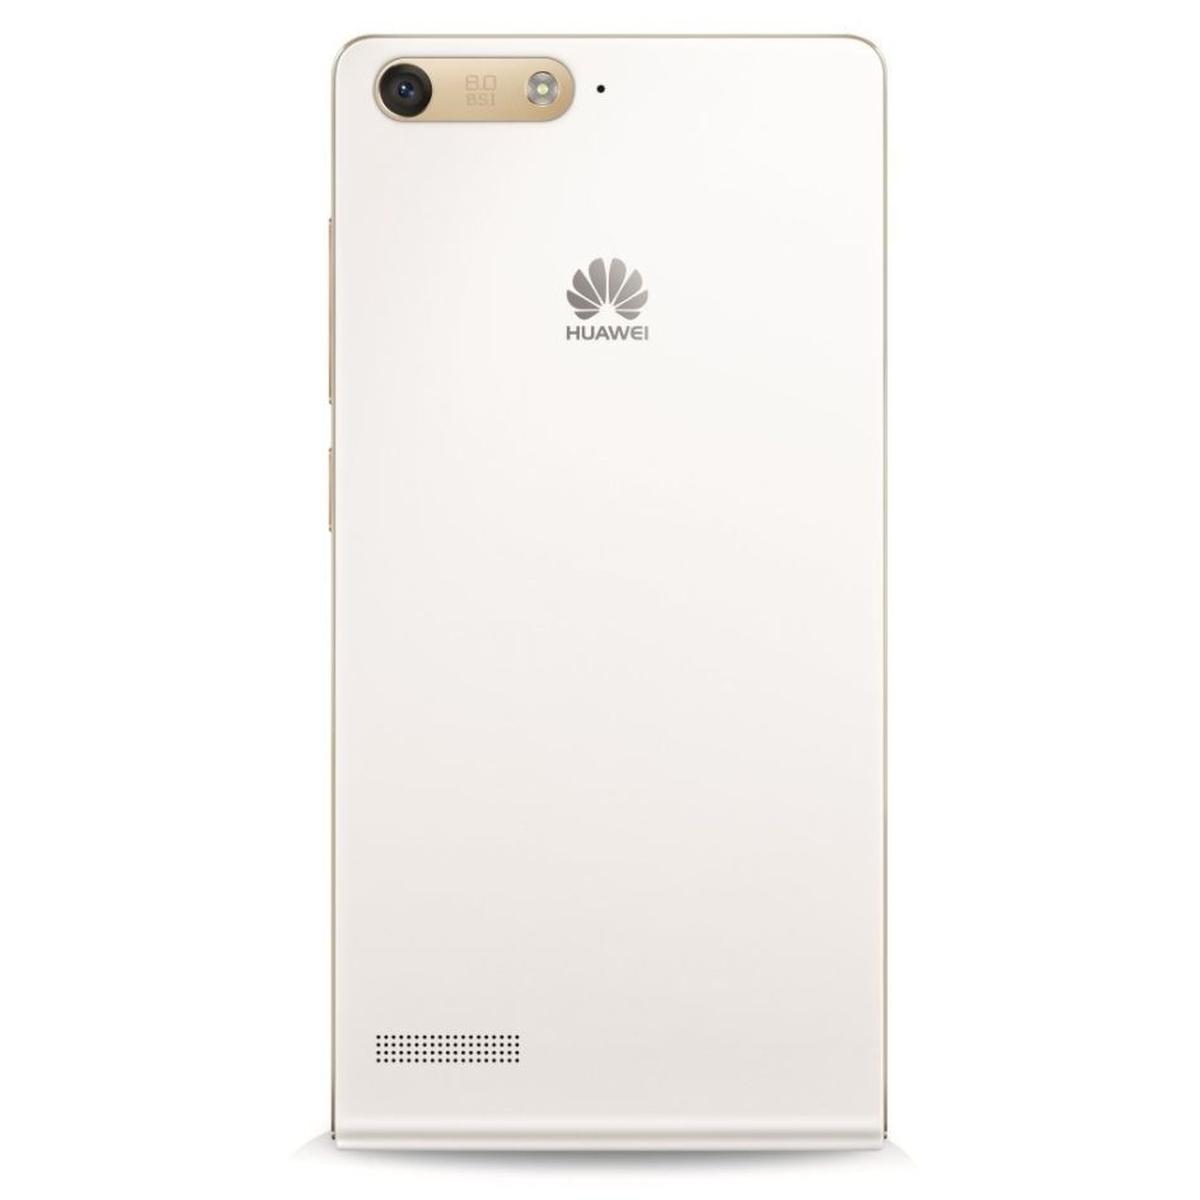 Huawei P7 mini weiss 8GB-LTE Android